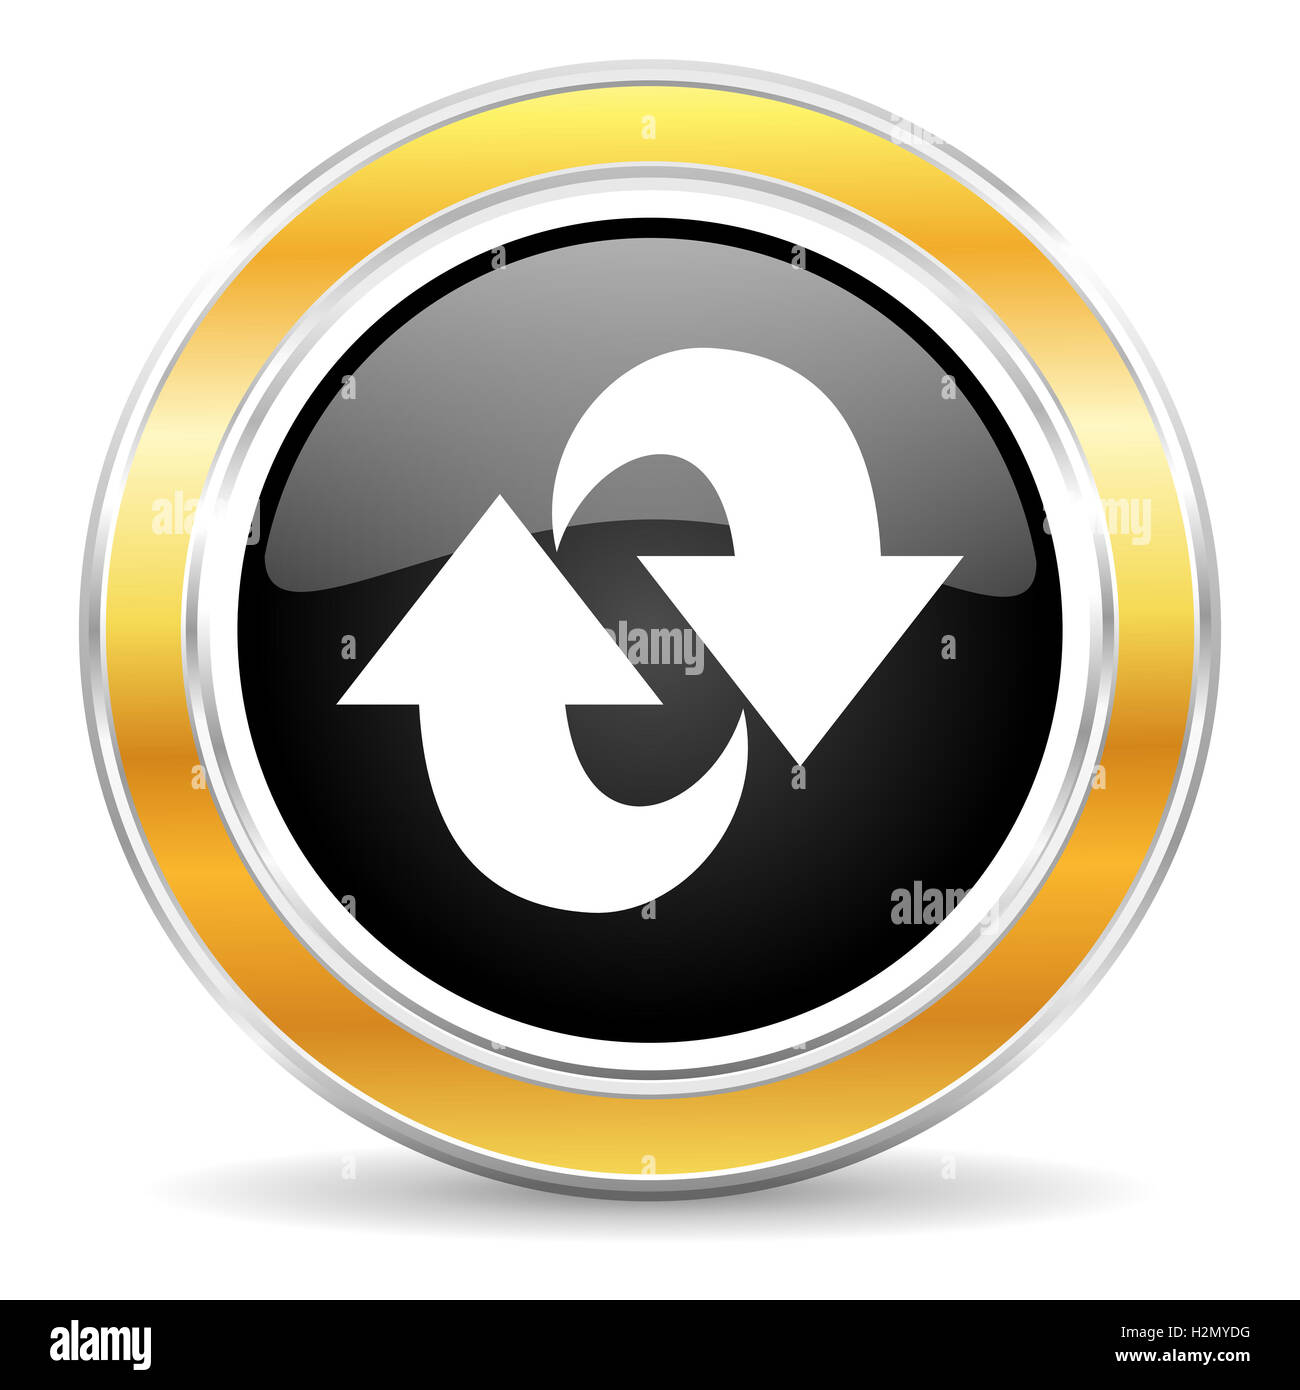 rotation icon - Stock Image